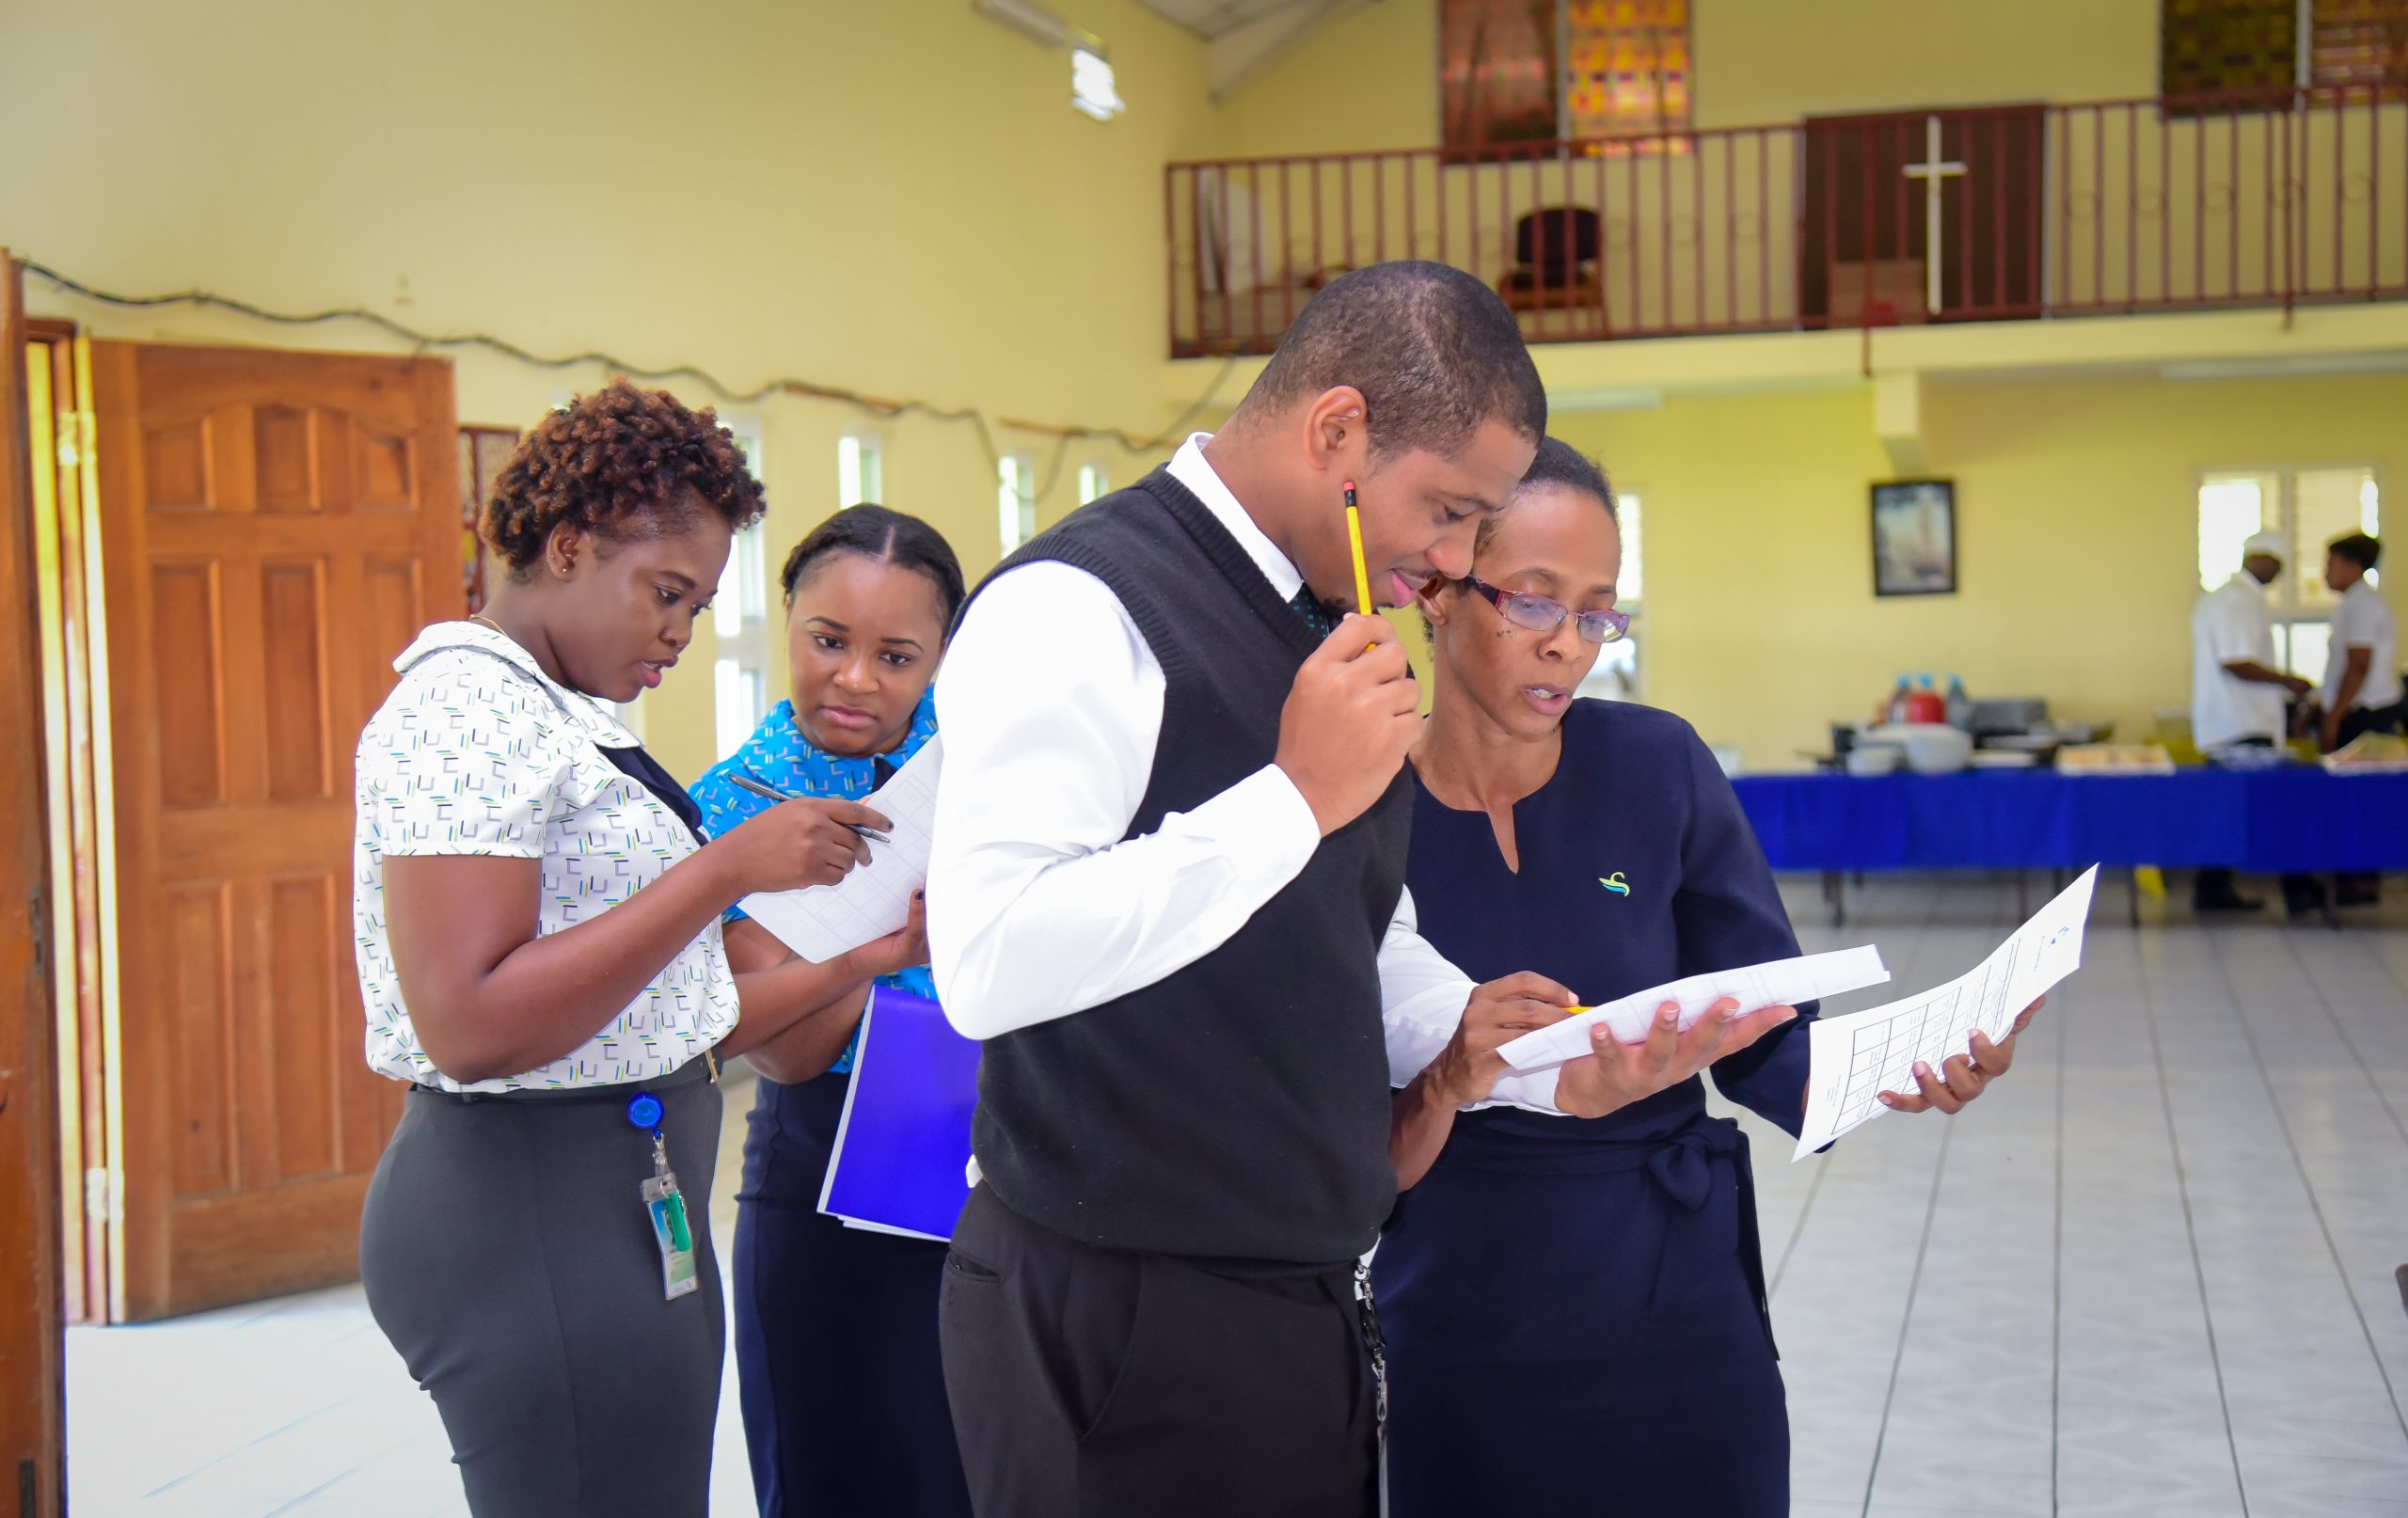 Policyholder staff from Western Jamaica engaged in discussion during a training session on the Deposit Insurance Scheme